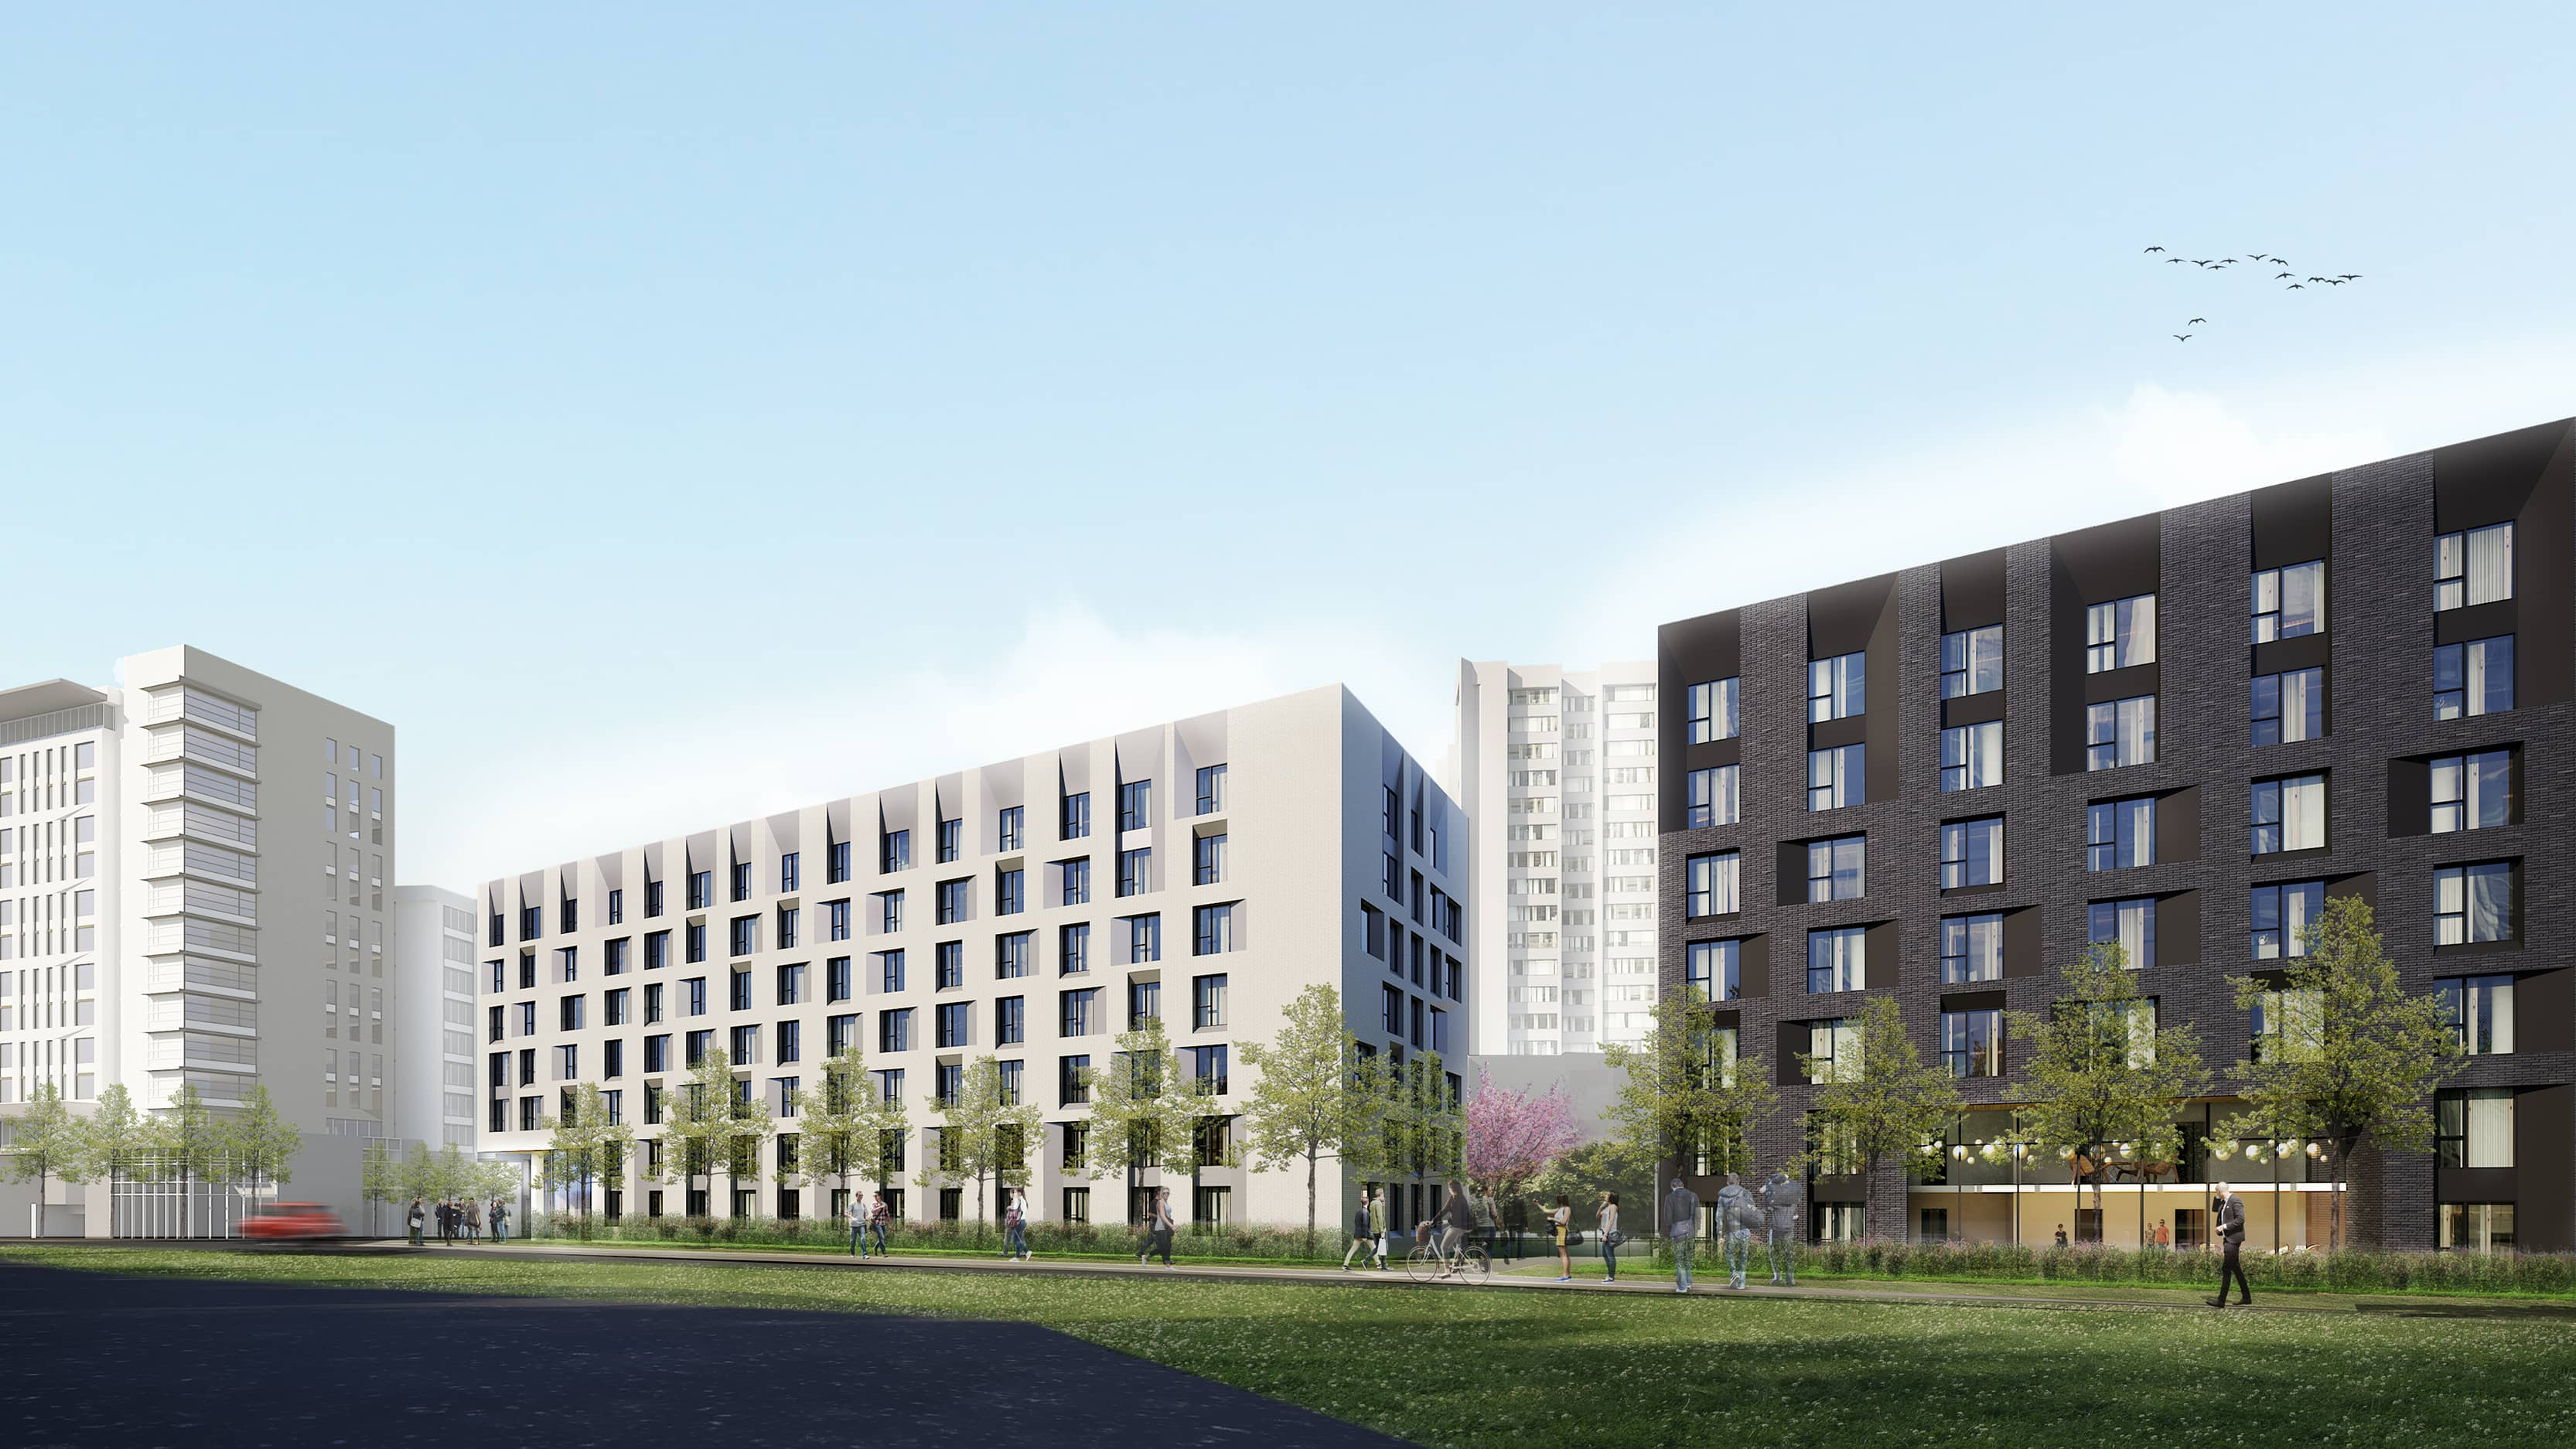 bbp ubc pacific residences rendering exterior 3